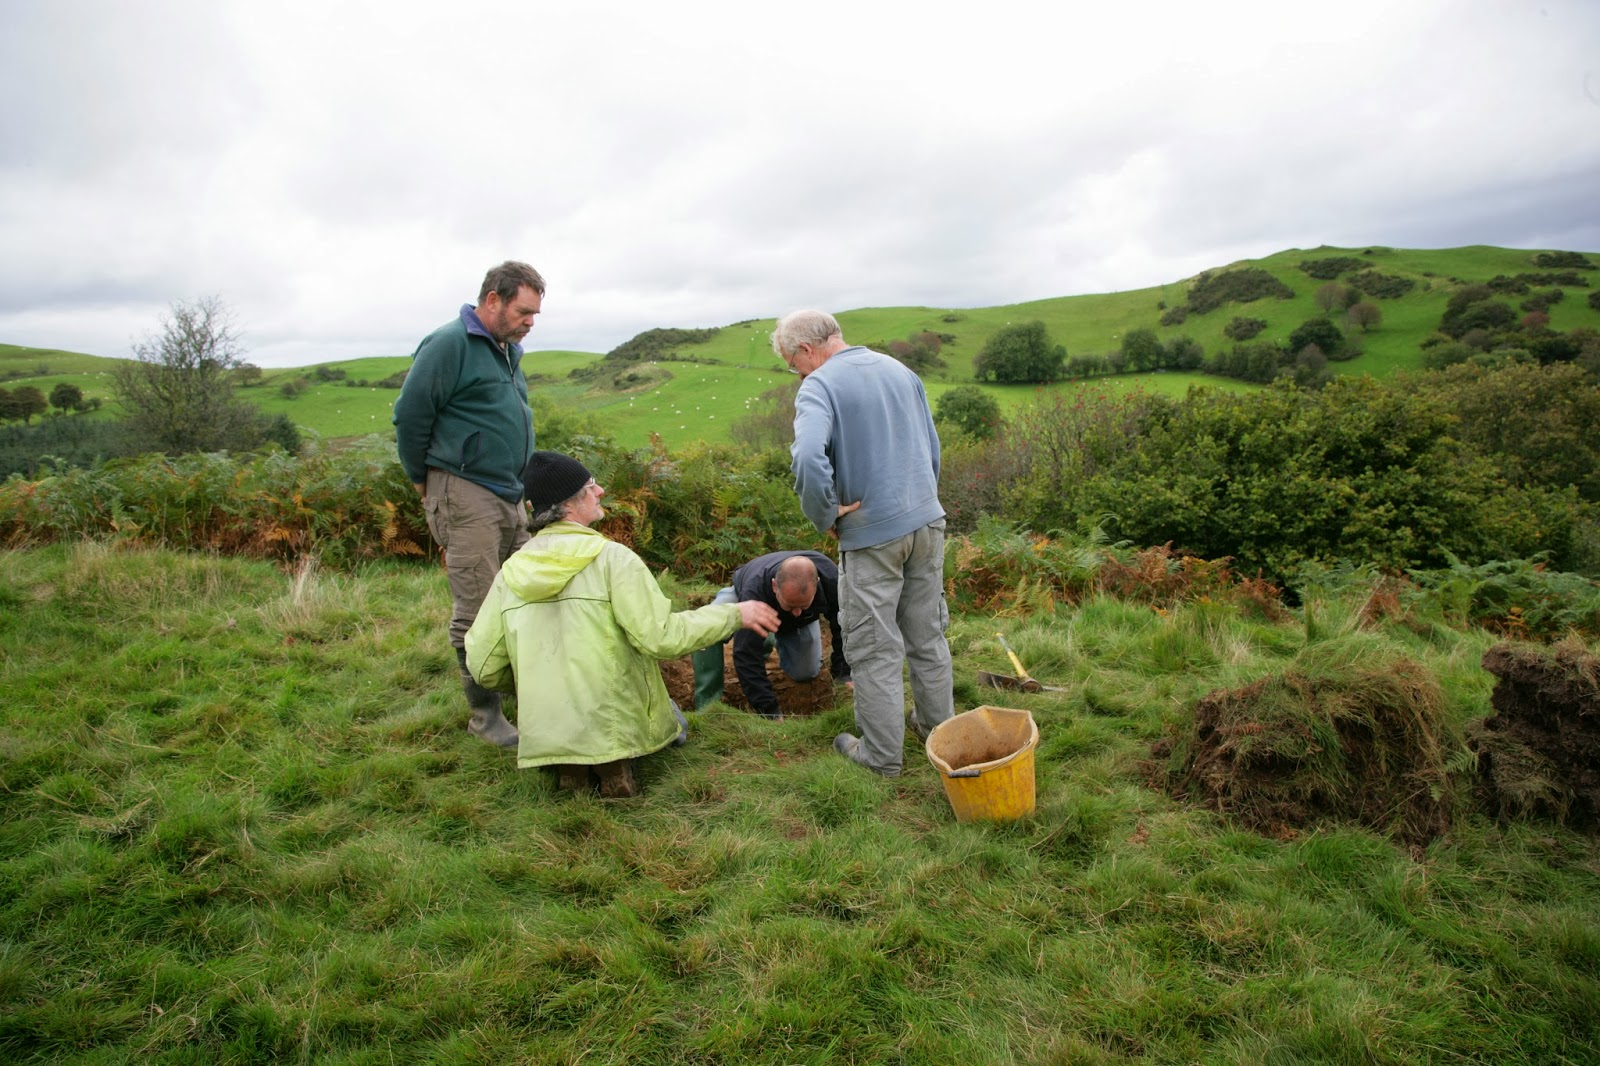 Hillfort study group